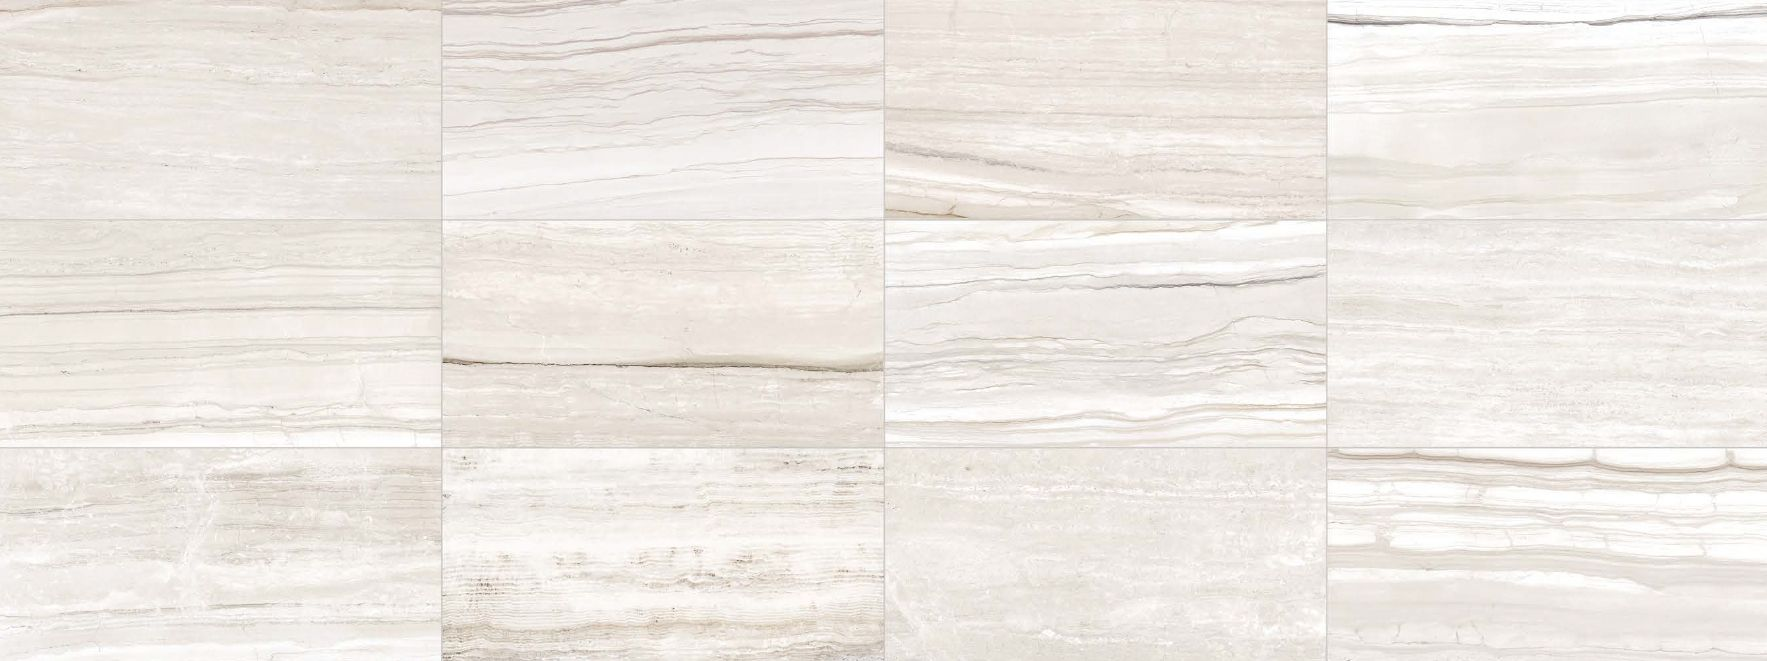 Delightful Striato White Is A Porcelain Tile From Italy. As Part Of The Stone Mix  Collection